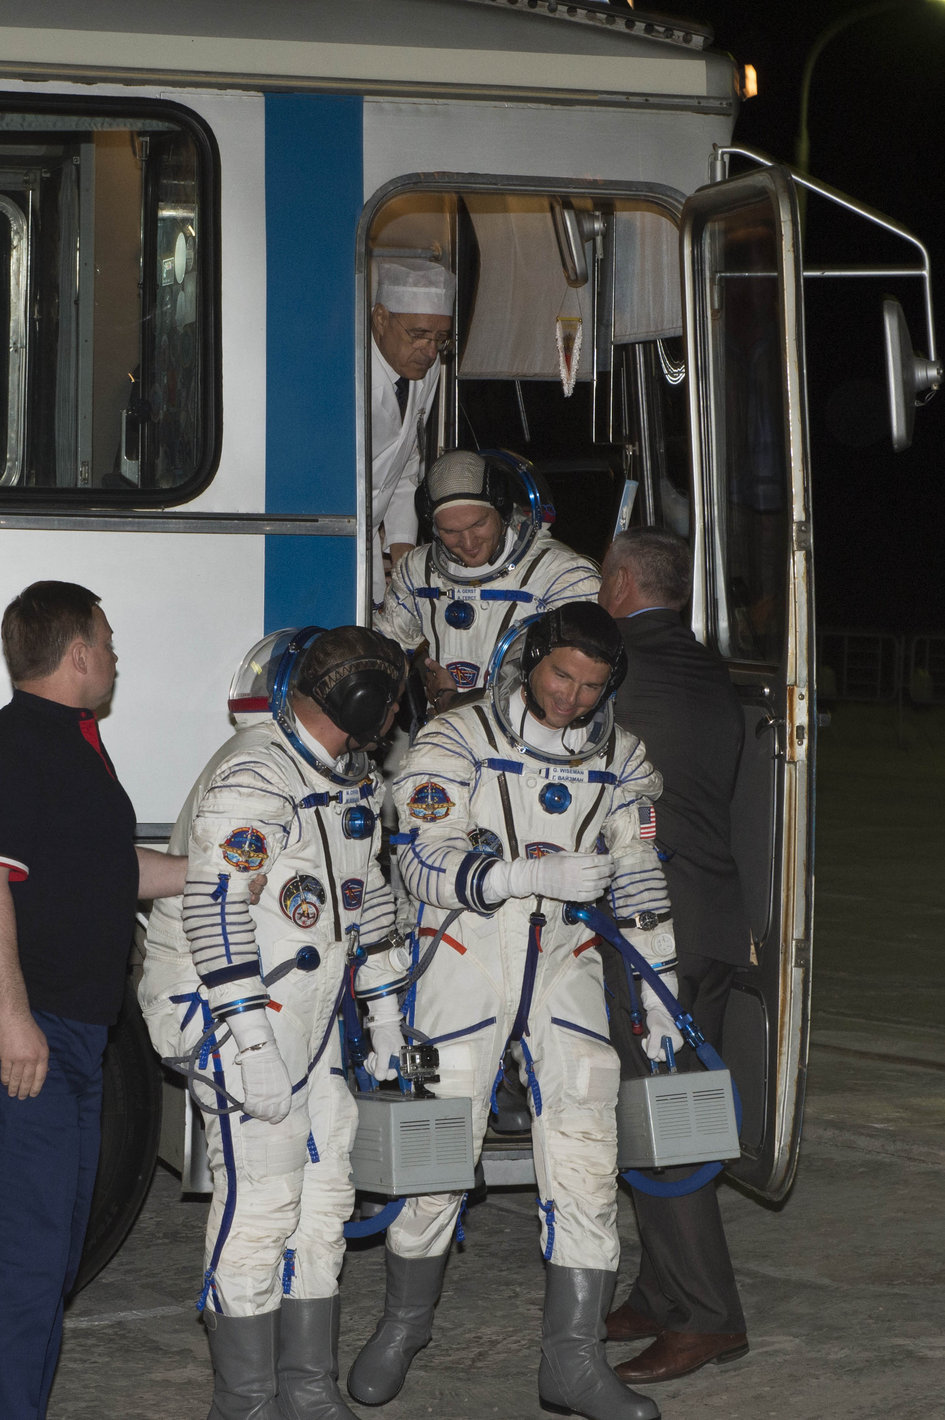 Arrival at the launch pad of Expedition 40/41 crew members